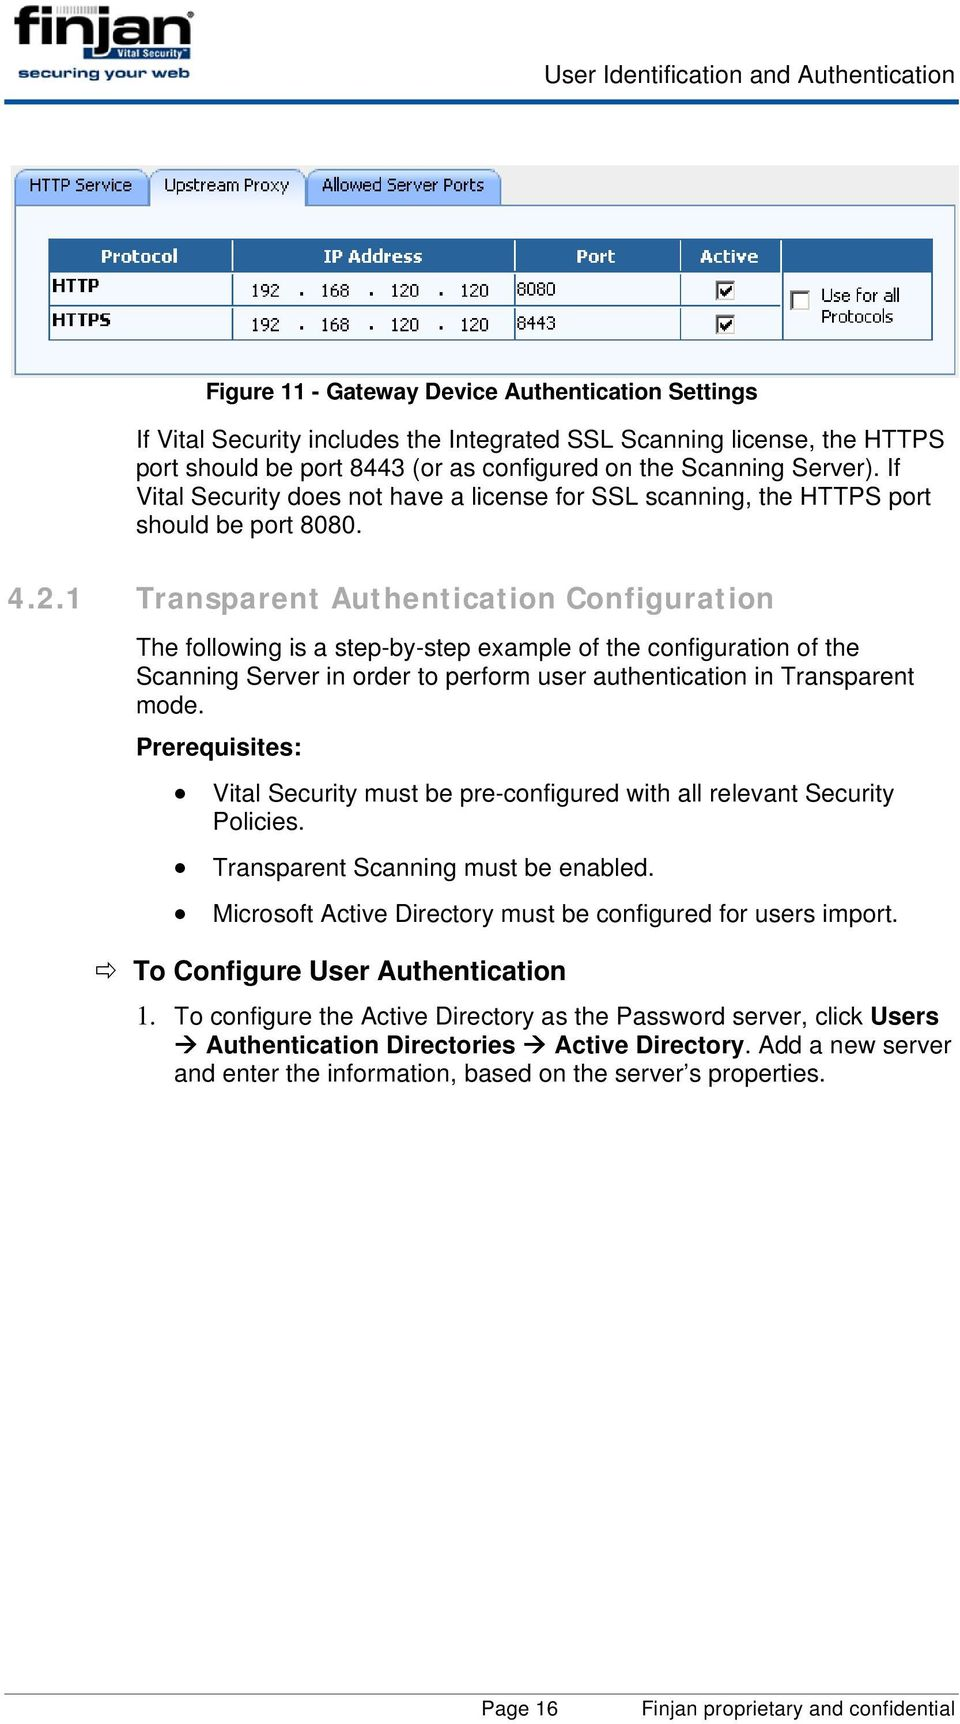 1 Transparent Authentication Configuration The following is a step-by-step example of the configuration of the Scanning Server in order to perform user authentication in Transparent mode.